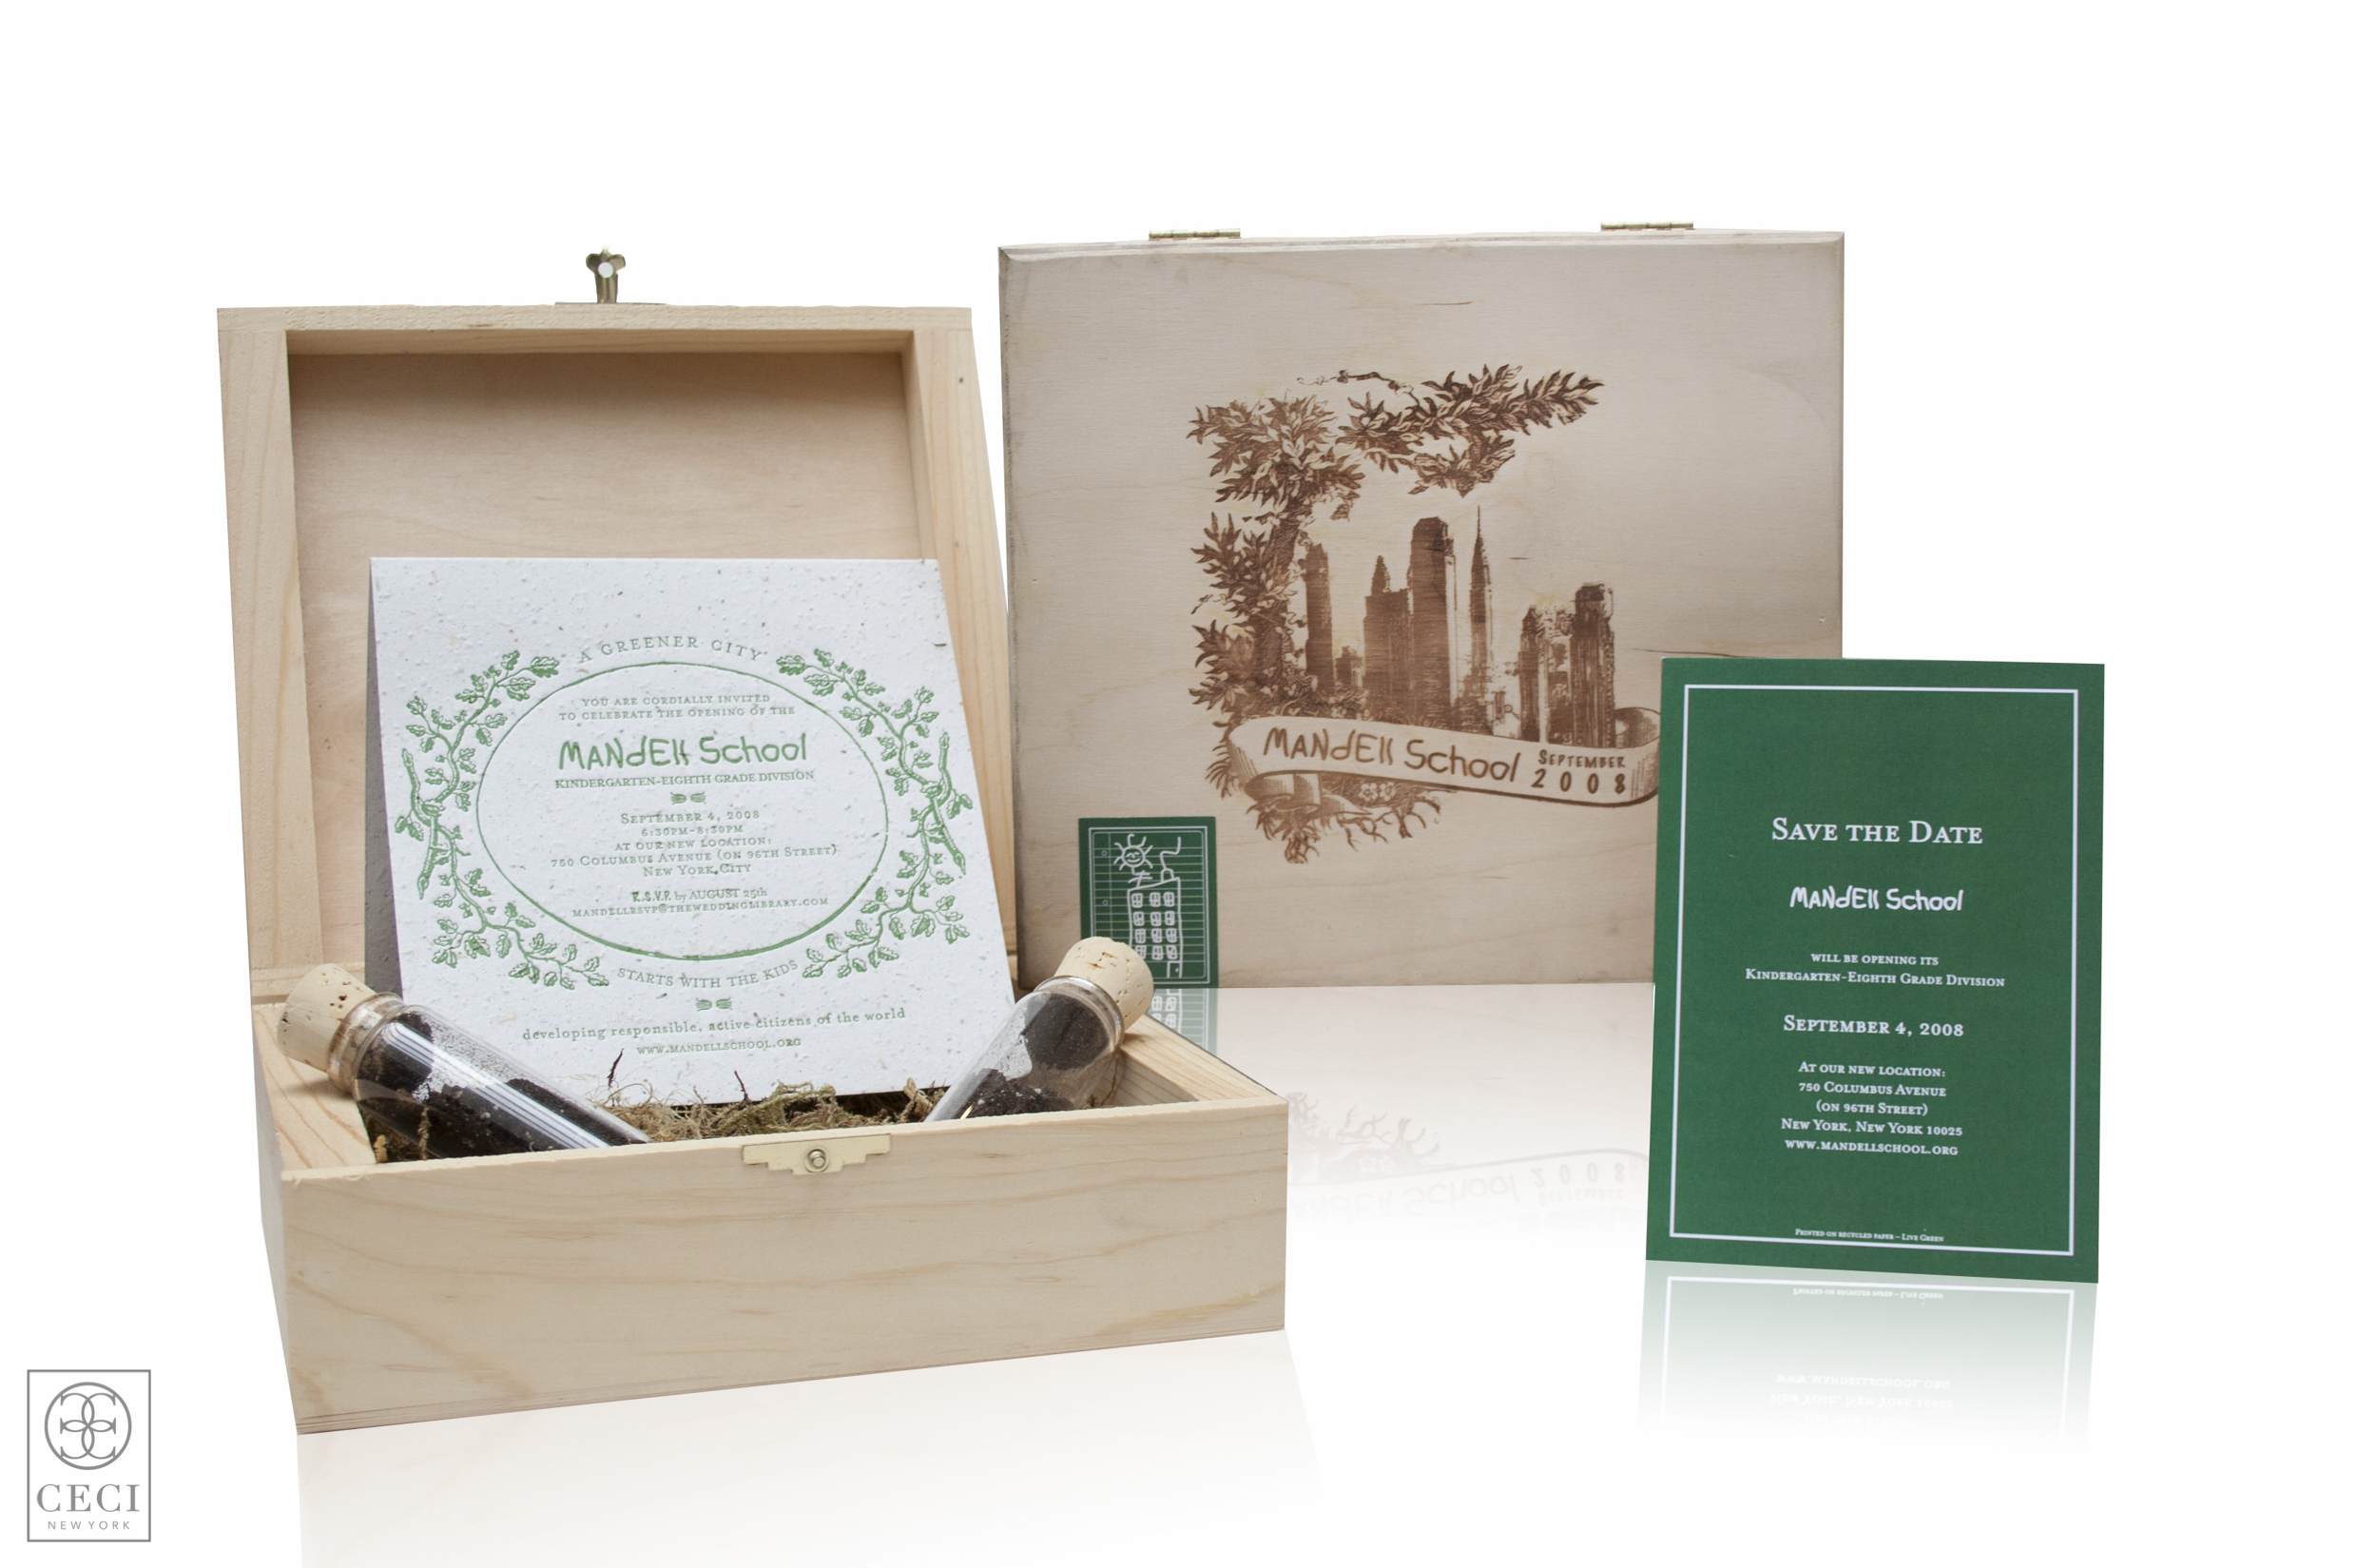 ceci_new_york_event_invitation_the_mandell_school_new_york_city_opening_natural_sustainable_eco_friendly_design-6.jpg